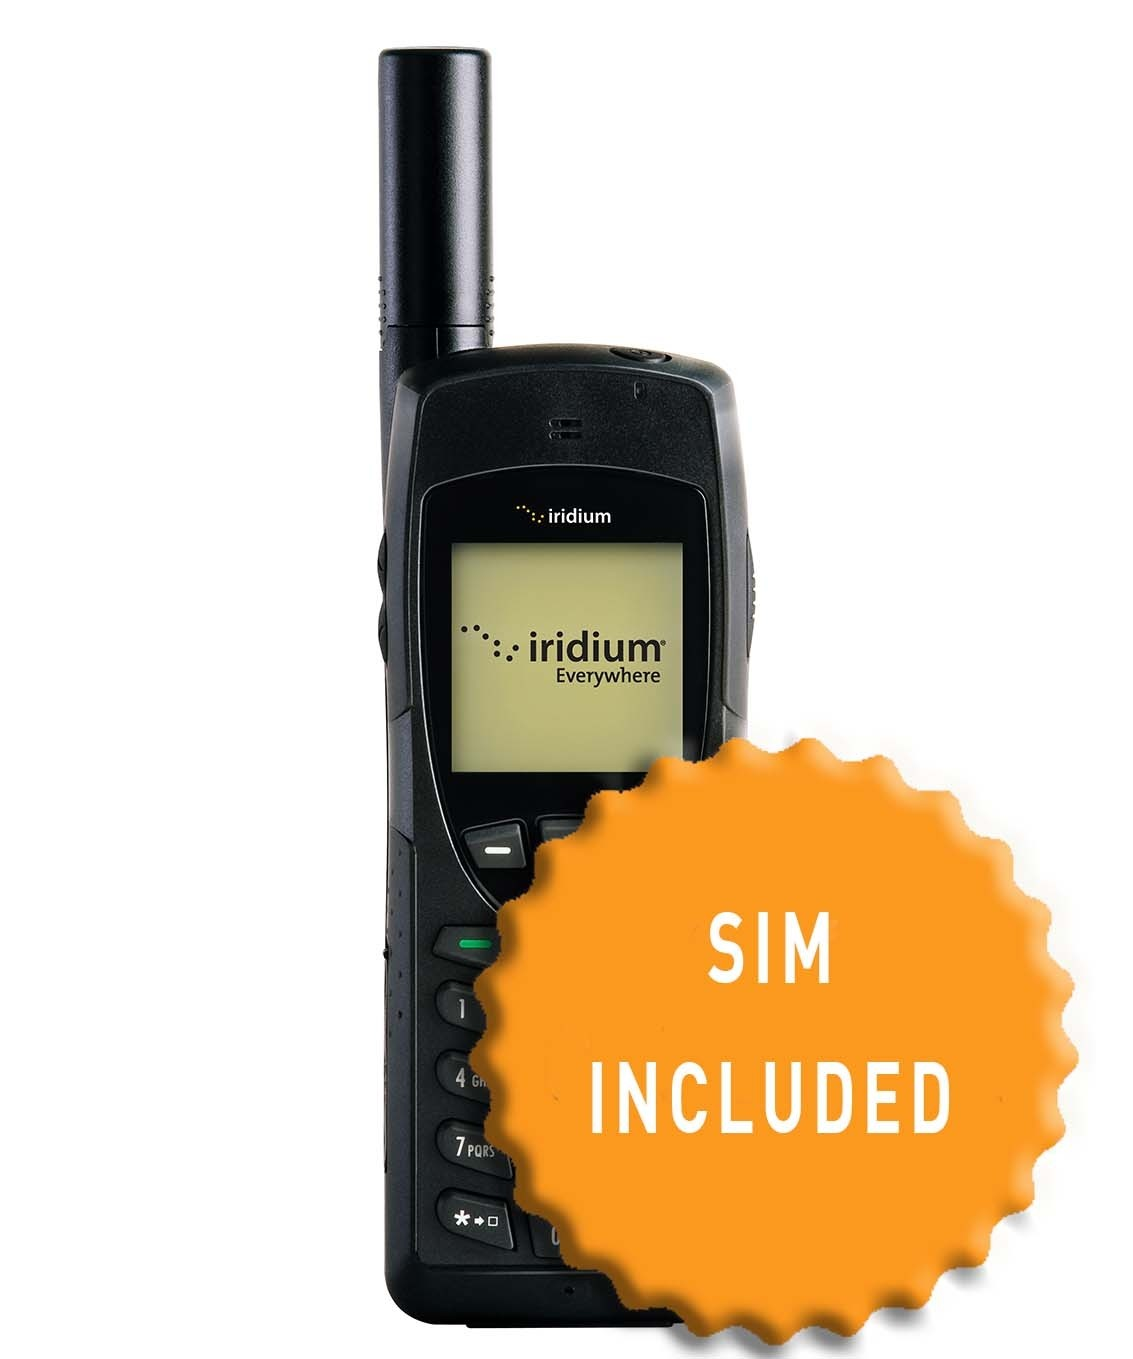 Iridium 9555 and SIM